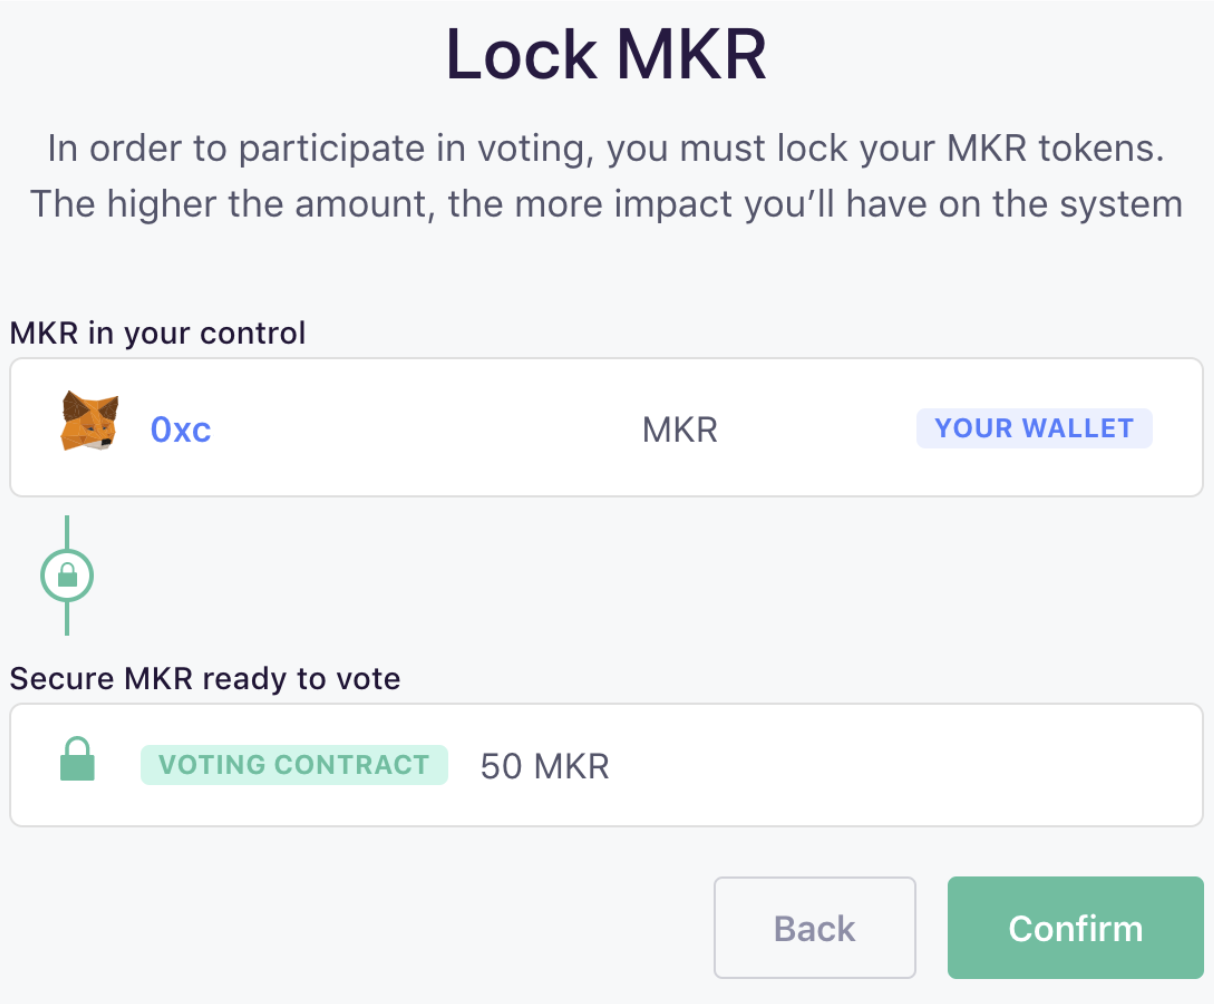 Confirm Lock MKR